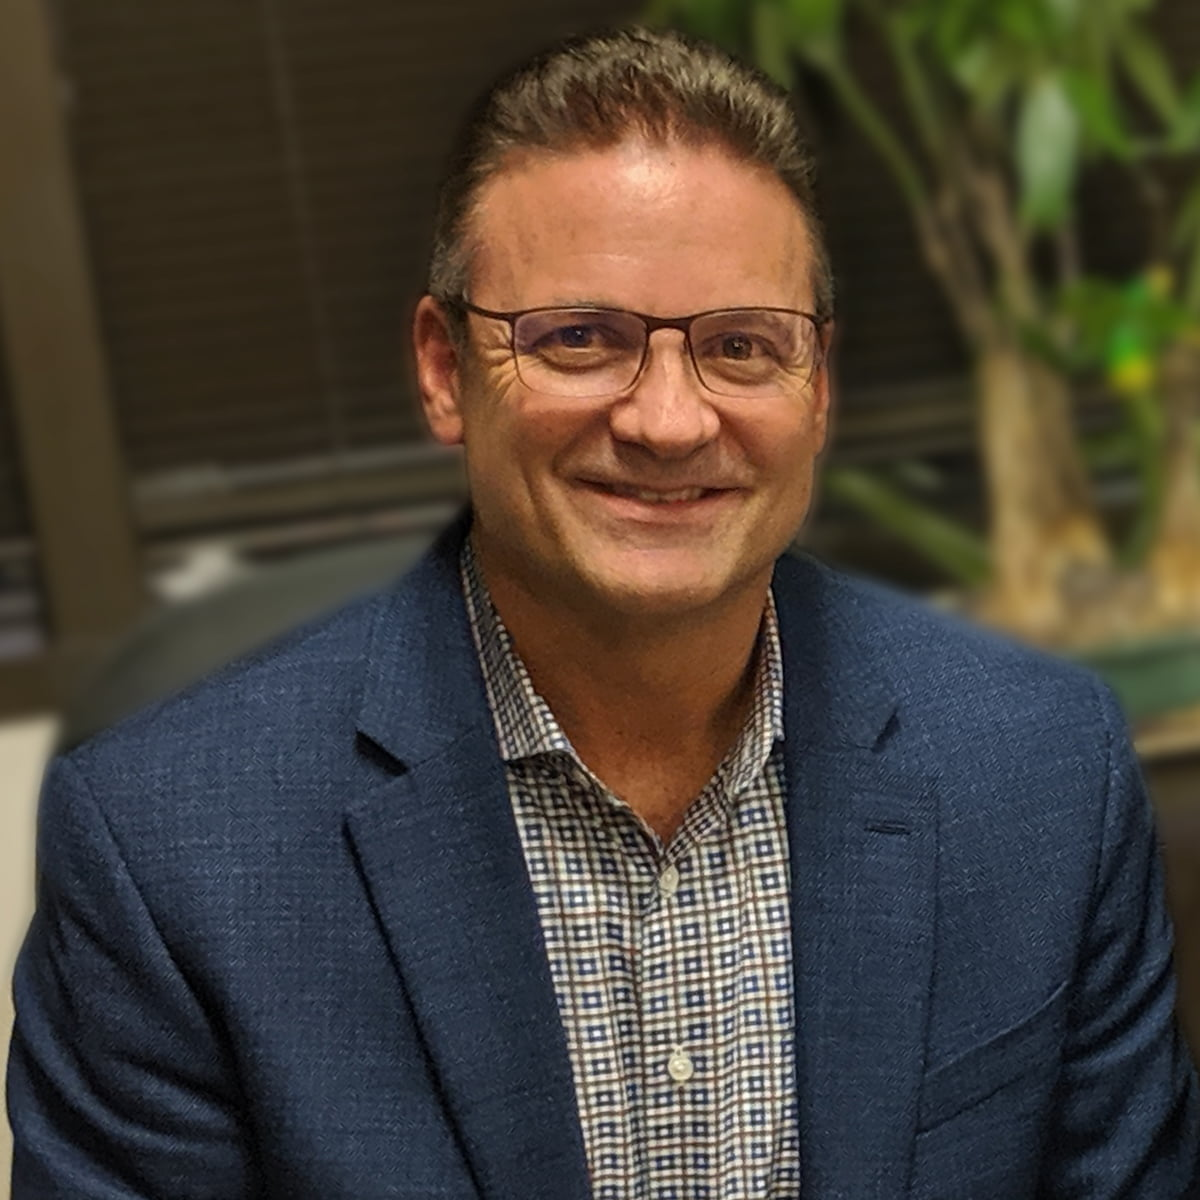 enChoice Appoints Dave Parks as Chief Executive Officer